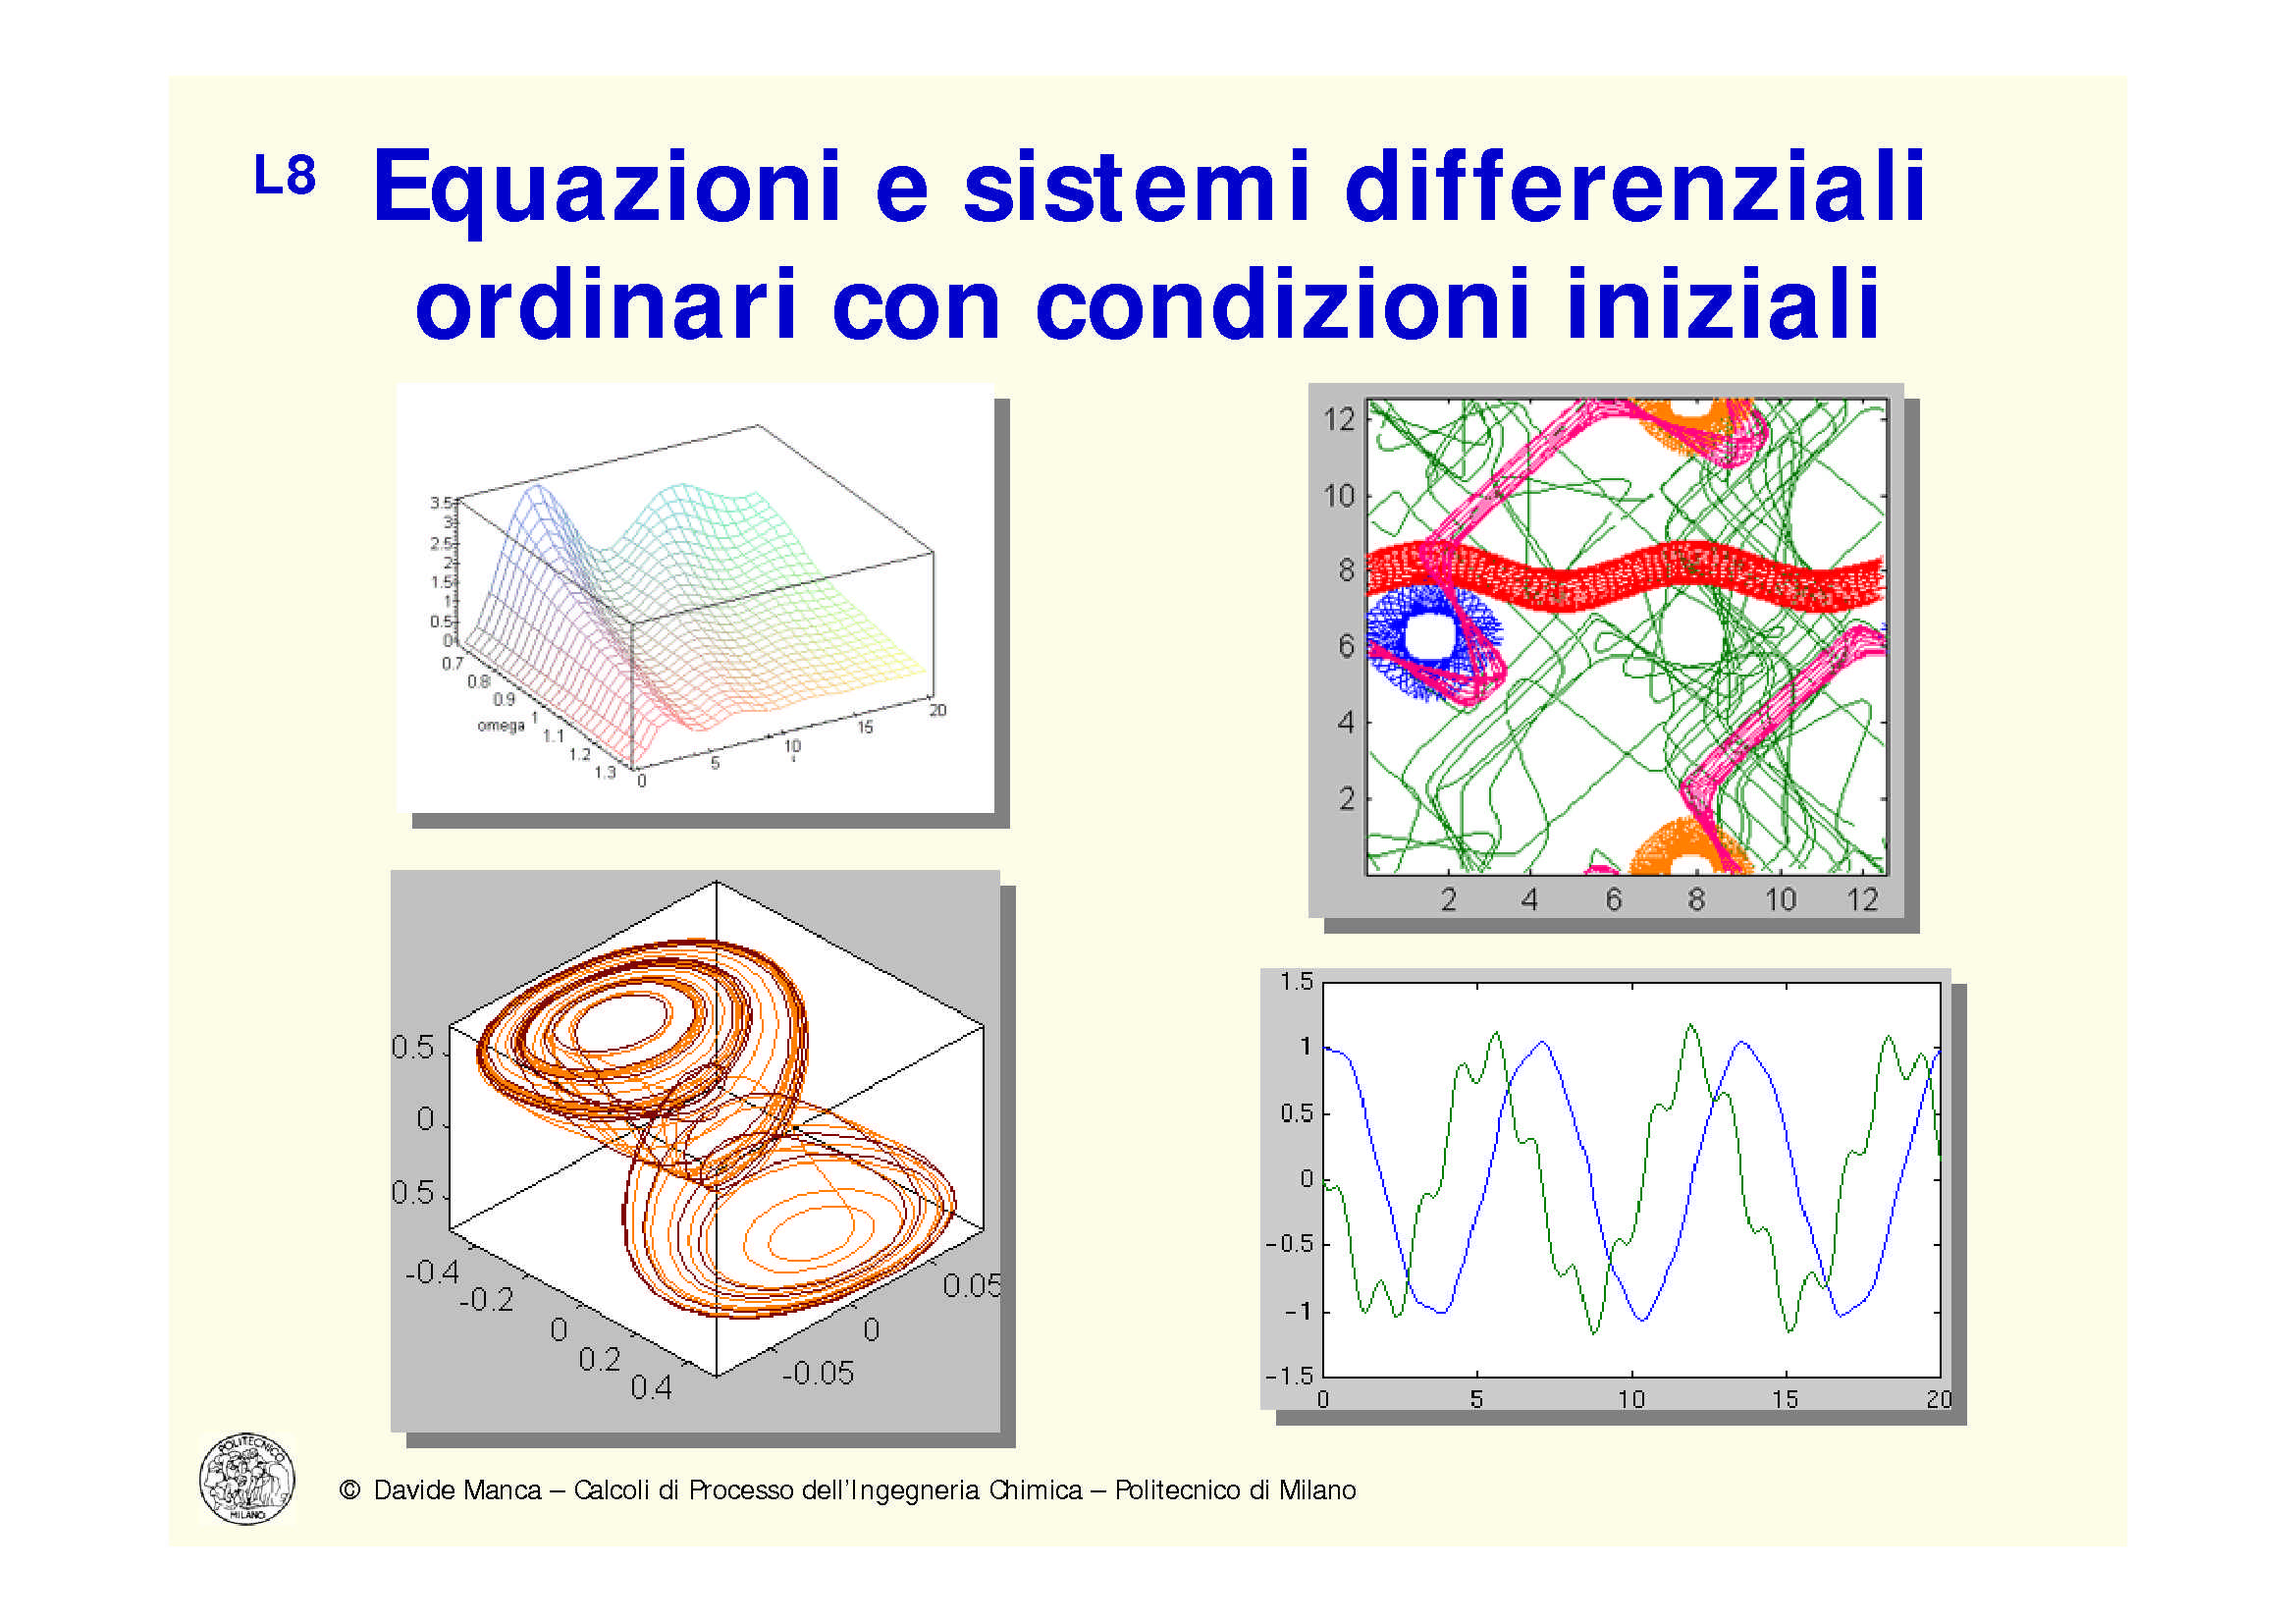 Equazioni e sistemi differenziali ordinari